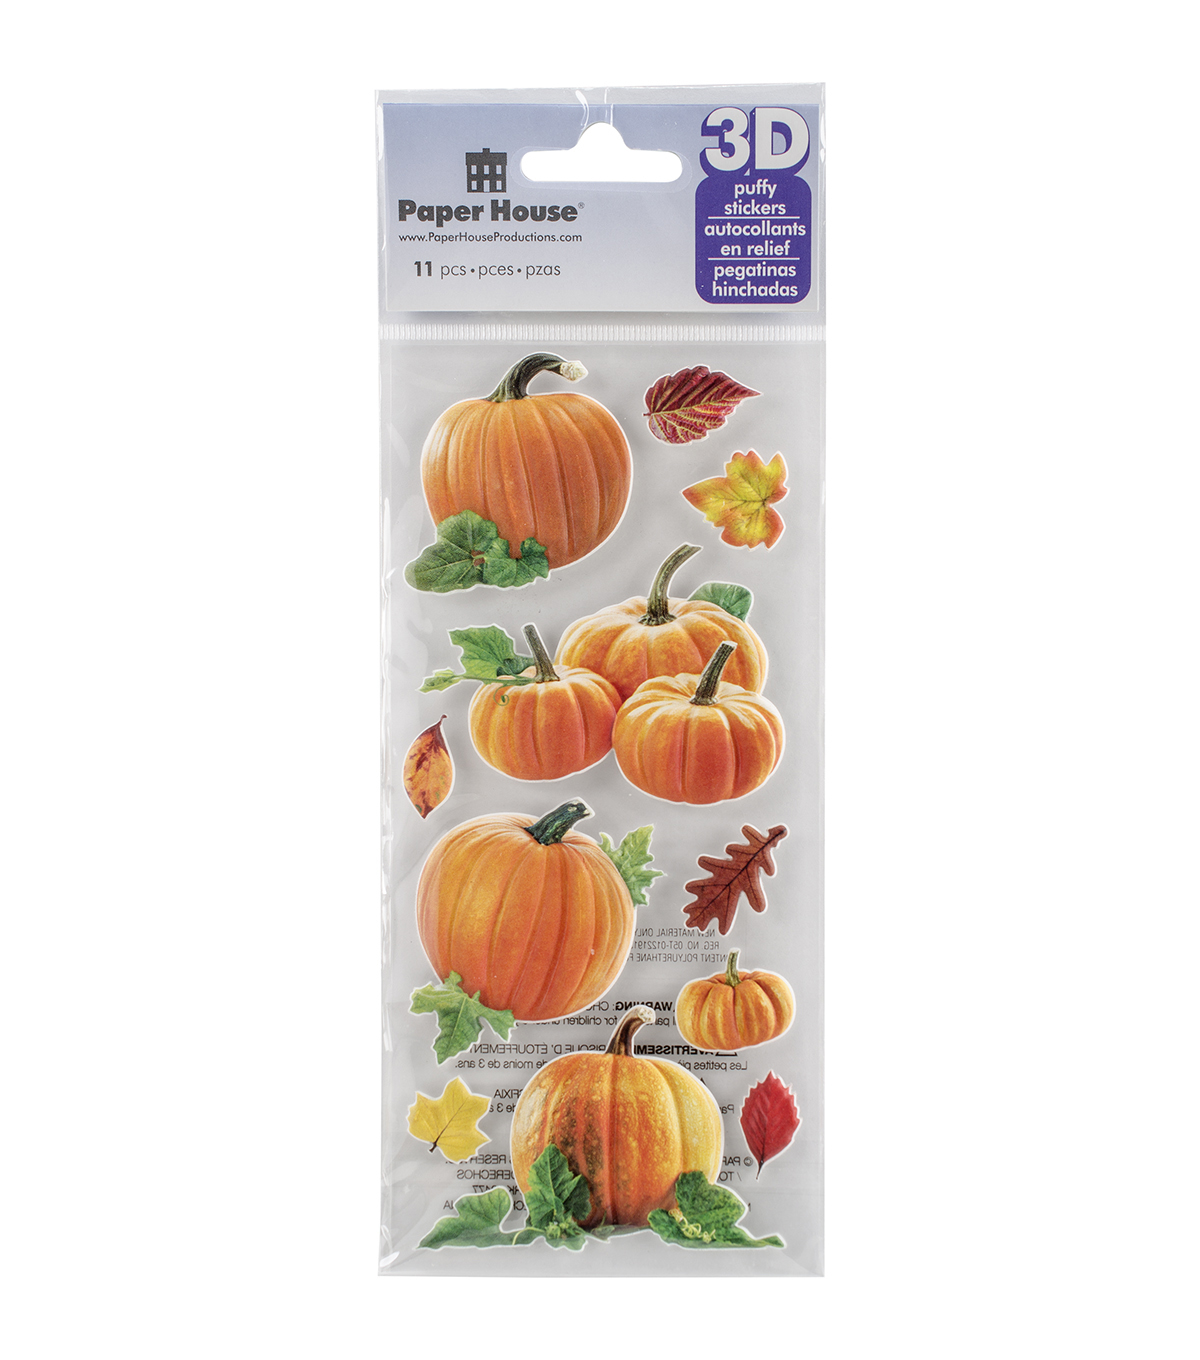 Paper House Puffy Stickers-Pumpkins